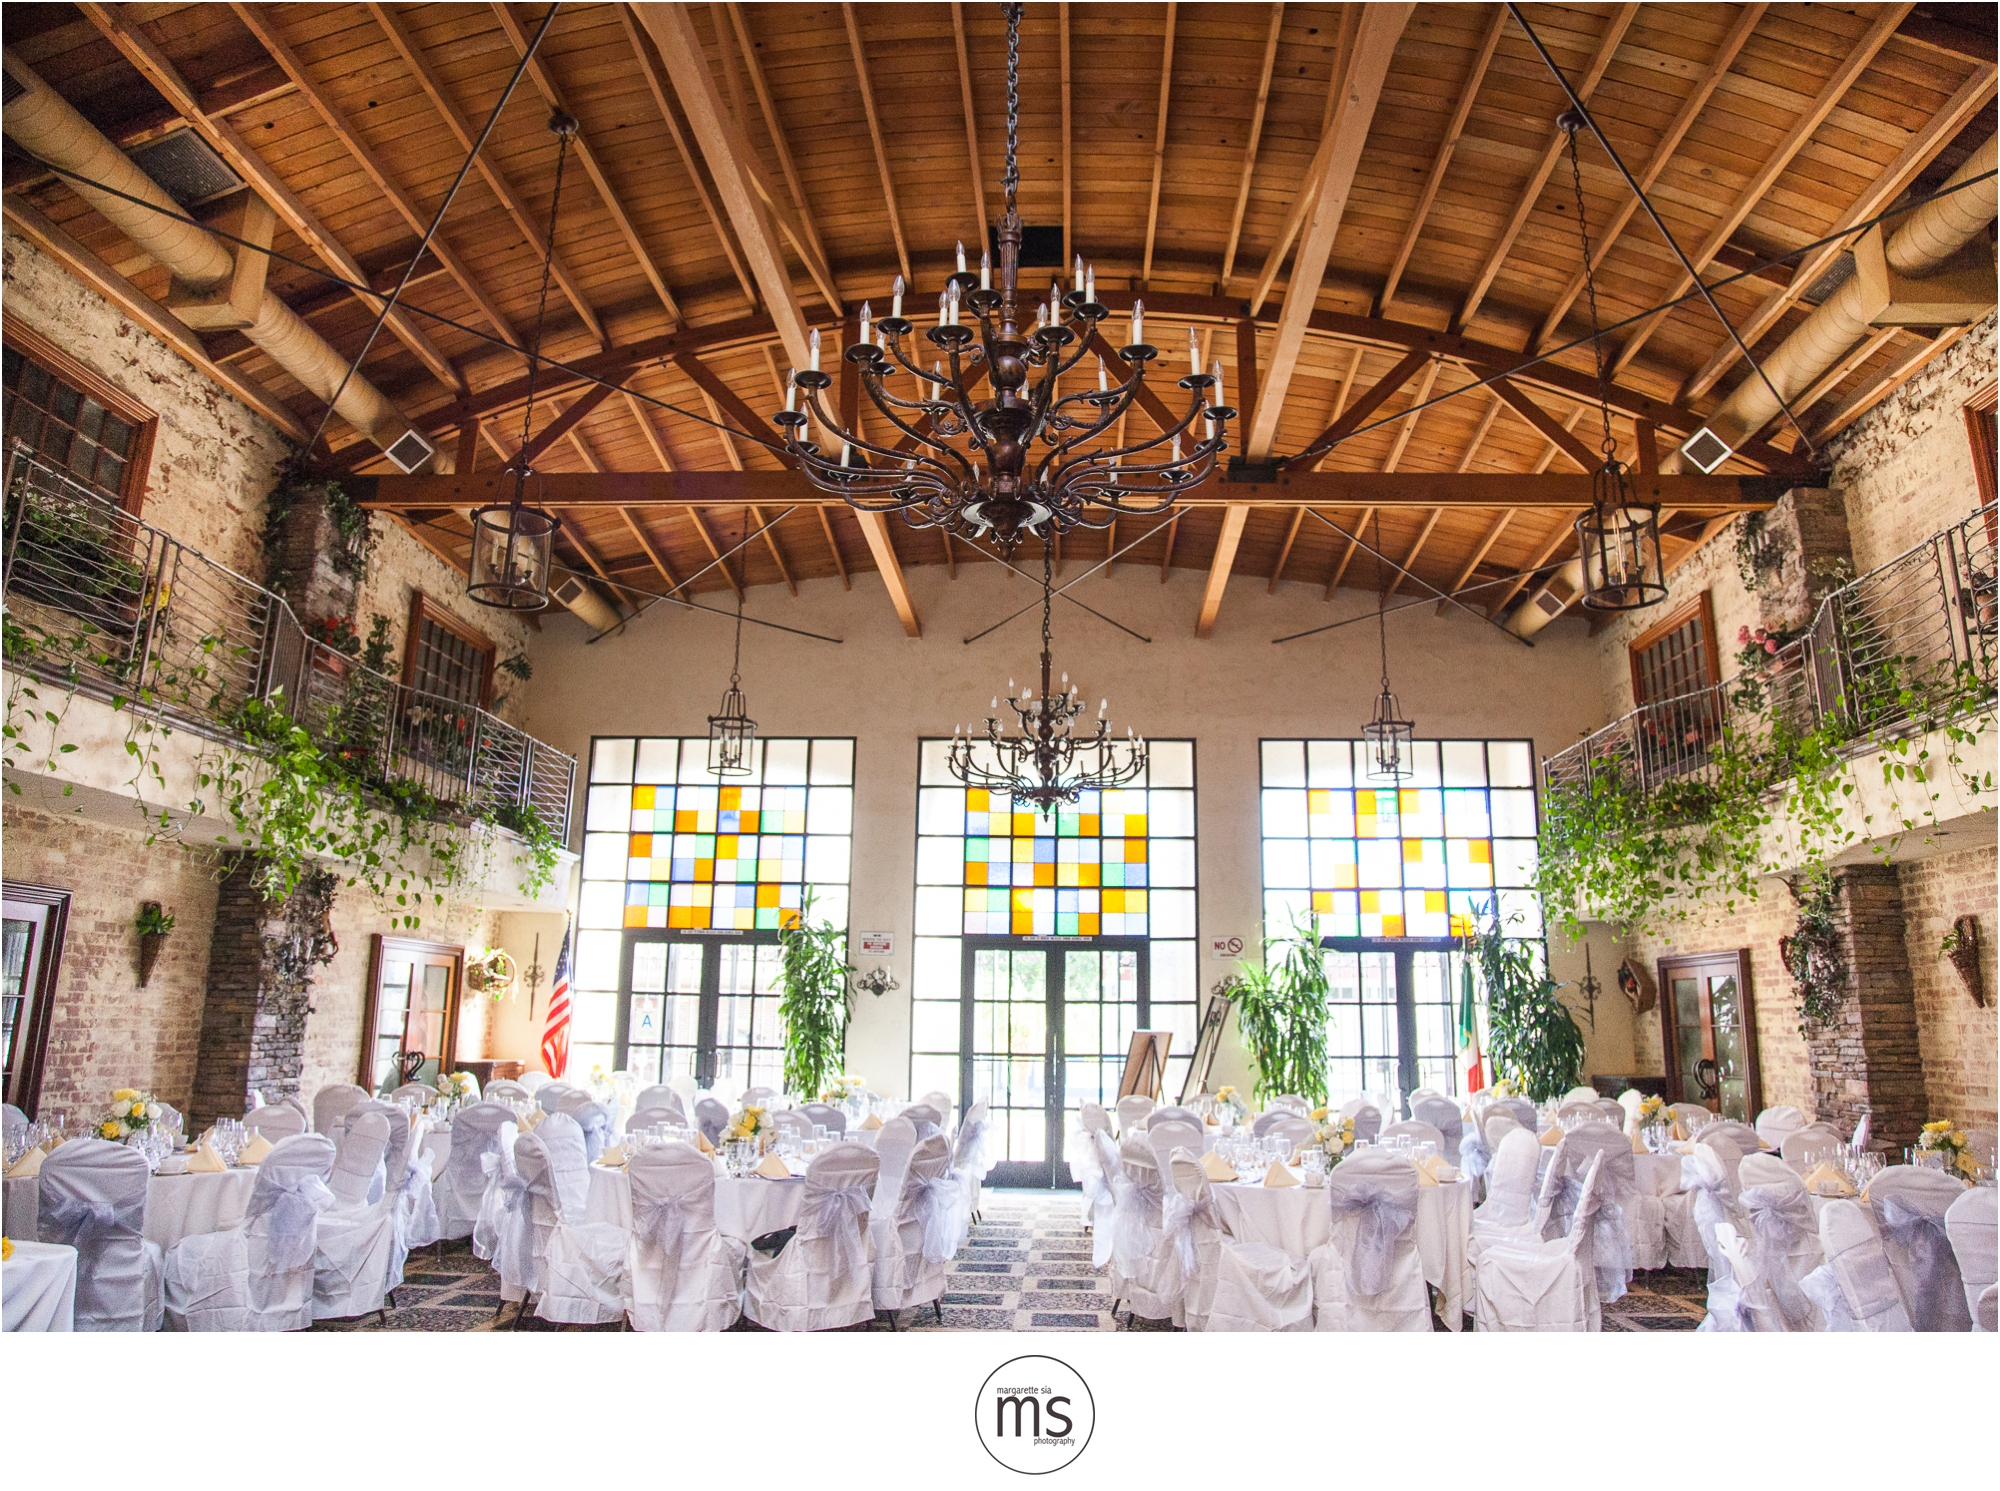 crafted san pedro michael s tuscany room wedding in san pedro california 1715